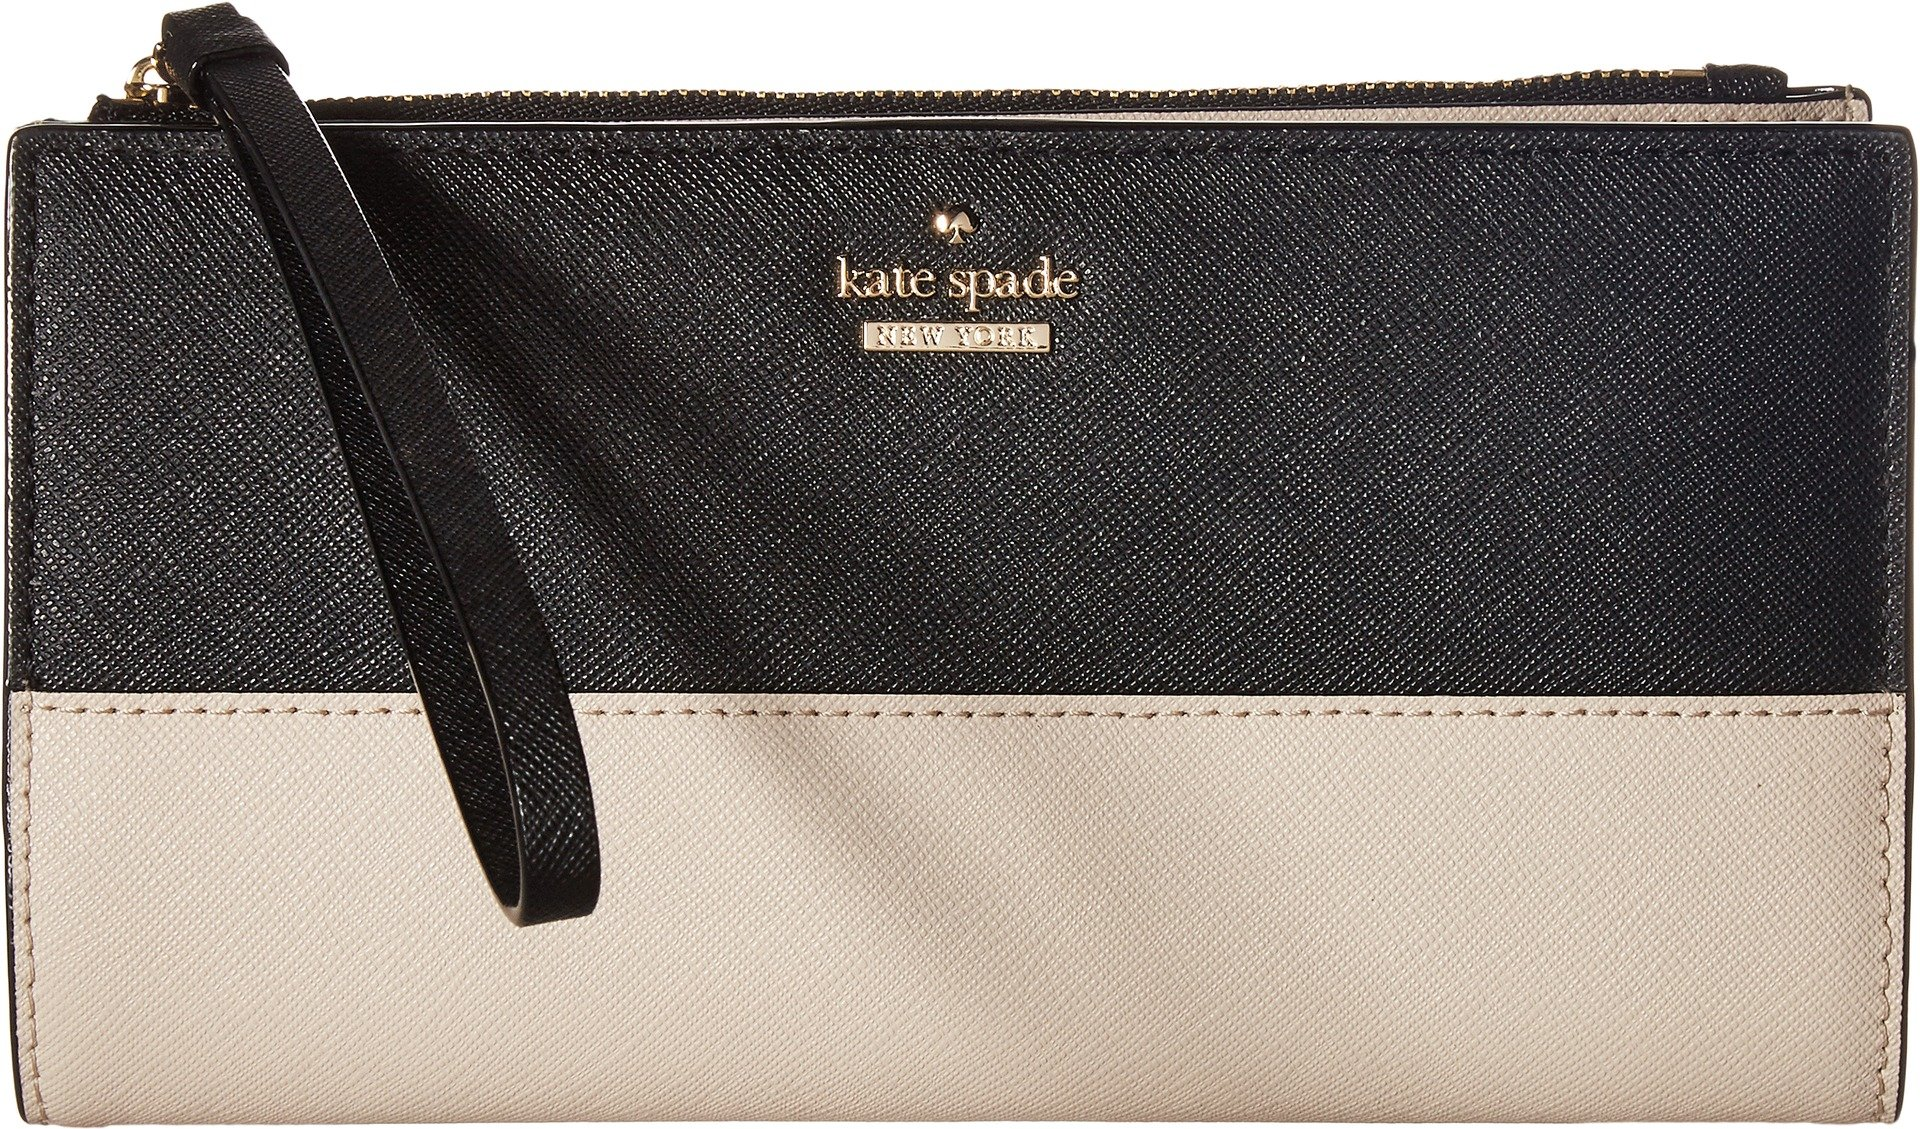 Kate Spade New York Women's Cameron Street Eliza Tusk/Black 1